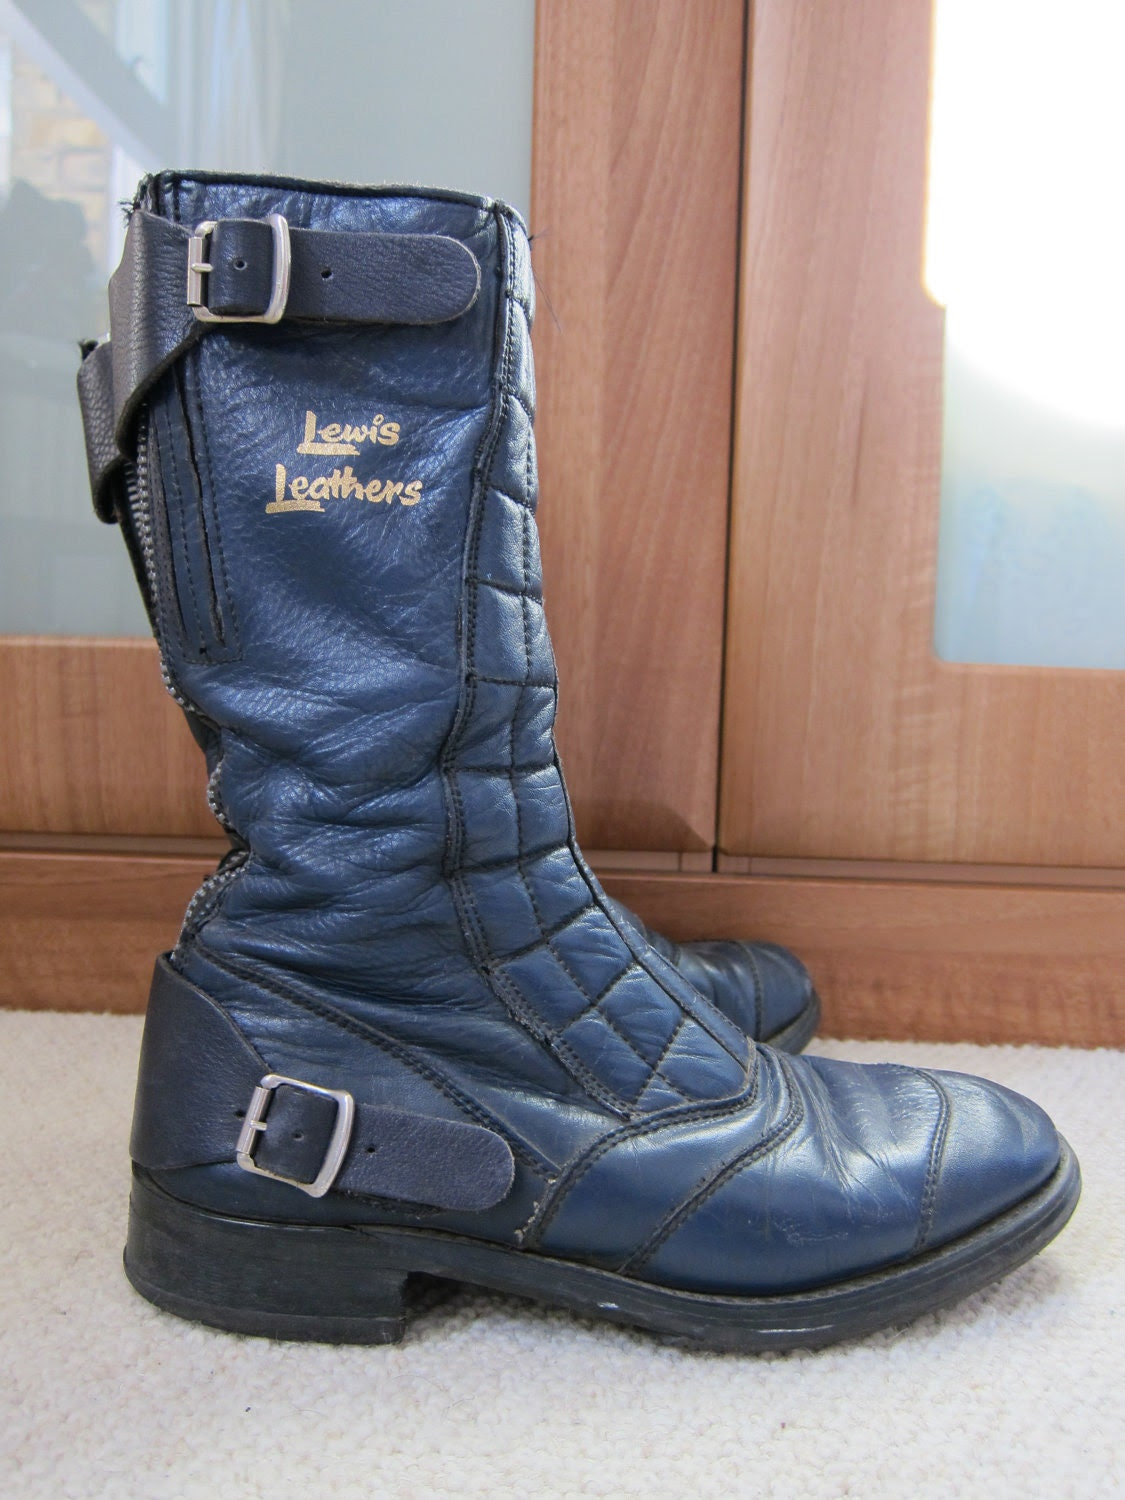 Lewis Leather Quilted British Motocycle Biker Boots in Navy with Buckles, Size UK 5-6, Mod, Scooter, Rocker, Goth, Grunge